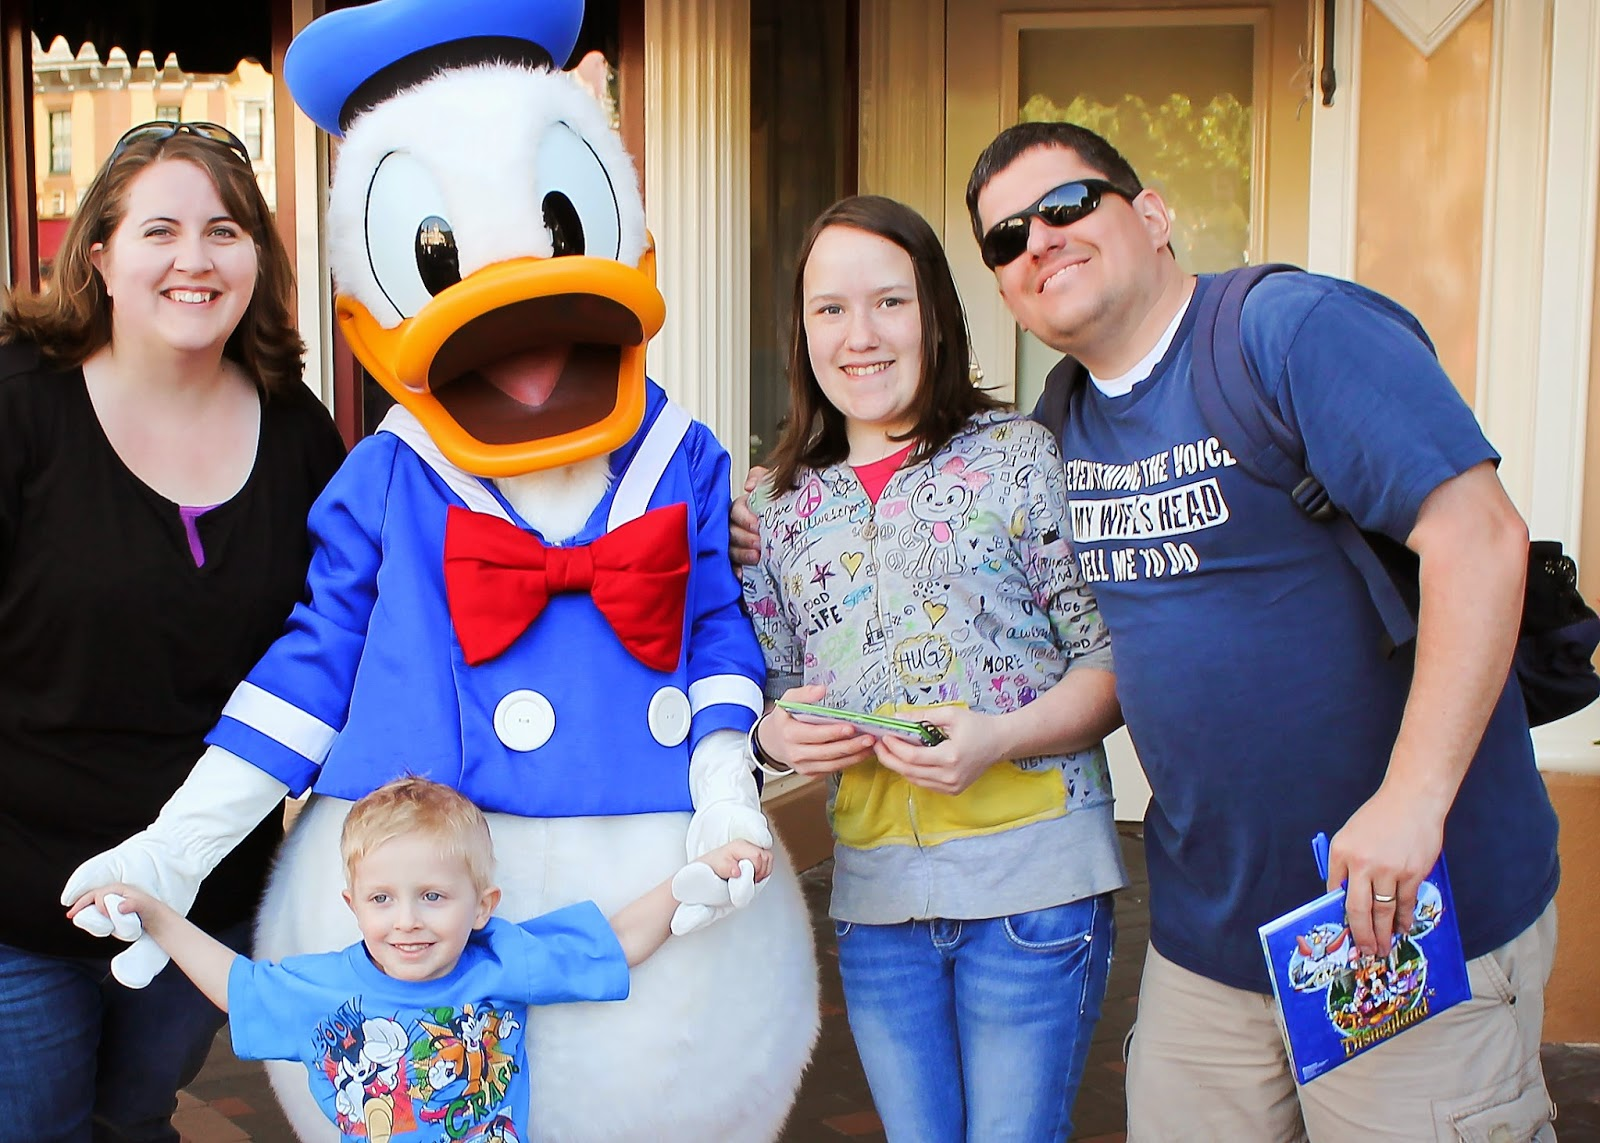 Simple tips to help you take great vacation photos from LoveOurDisney.com